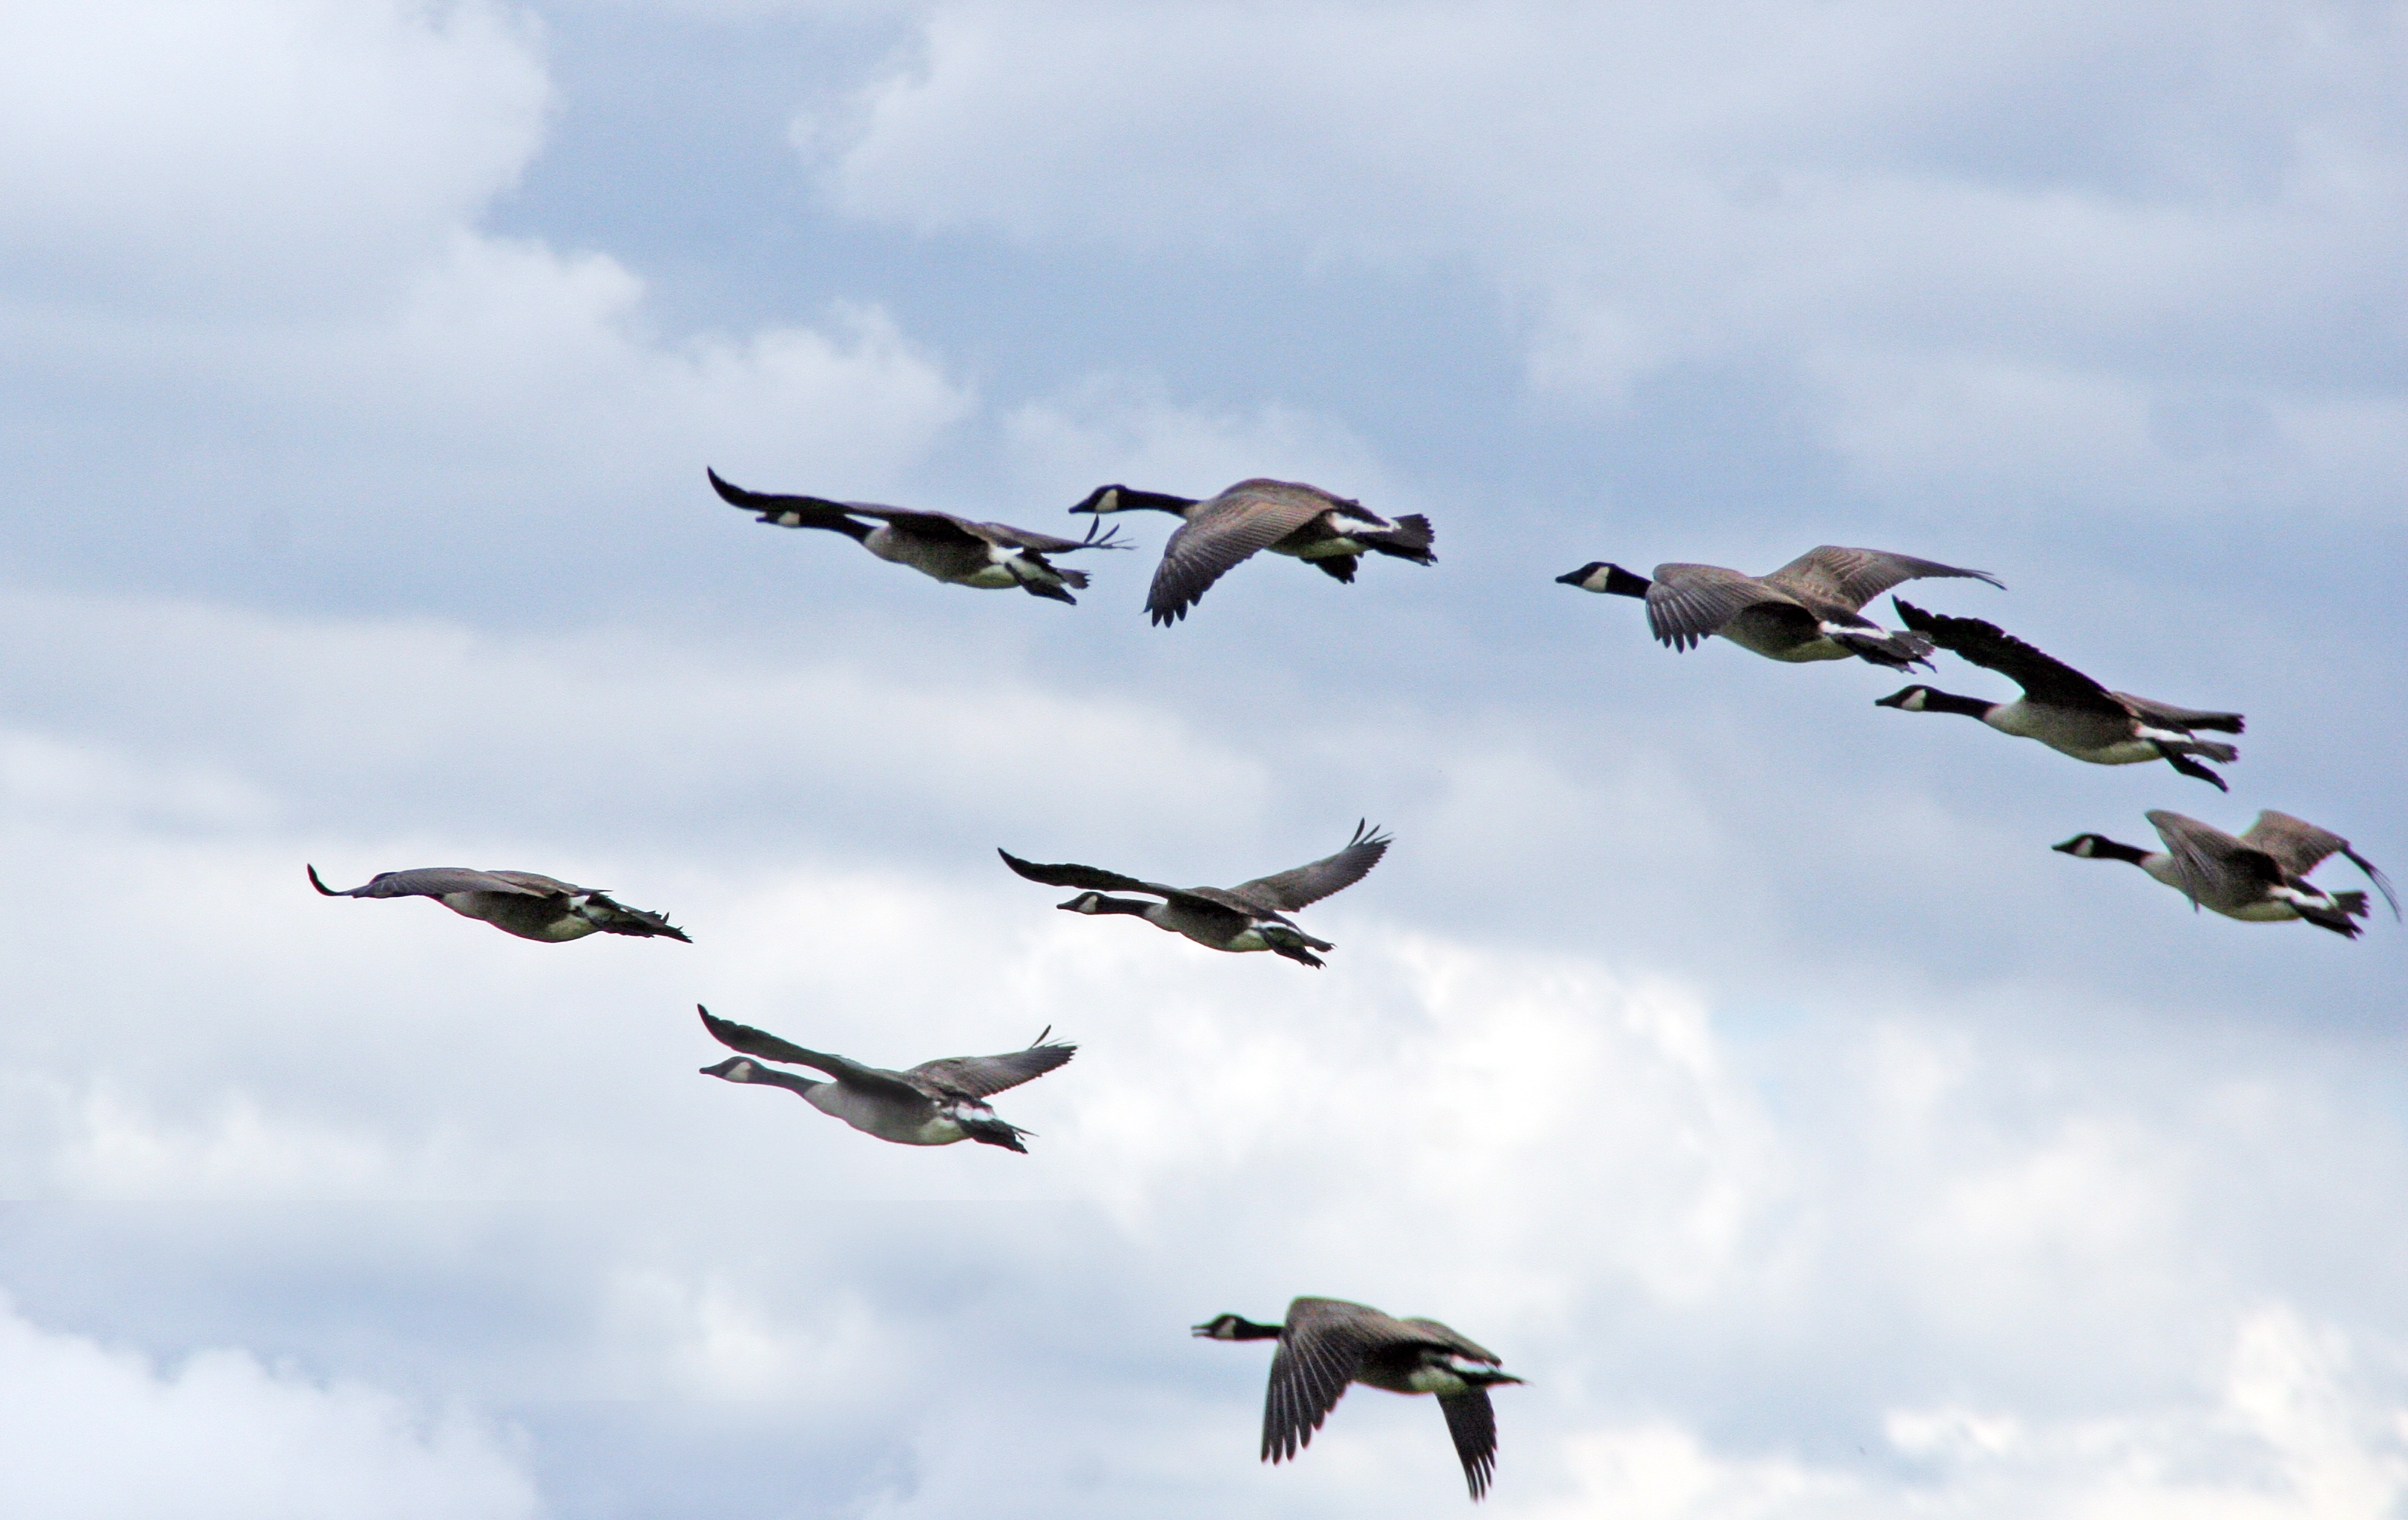 By liz west (Flickr: geese in flight) [CC-BY-2.0 (https://creativecommons.org/licenses/by/2.0)], via Wikimedia Commons